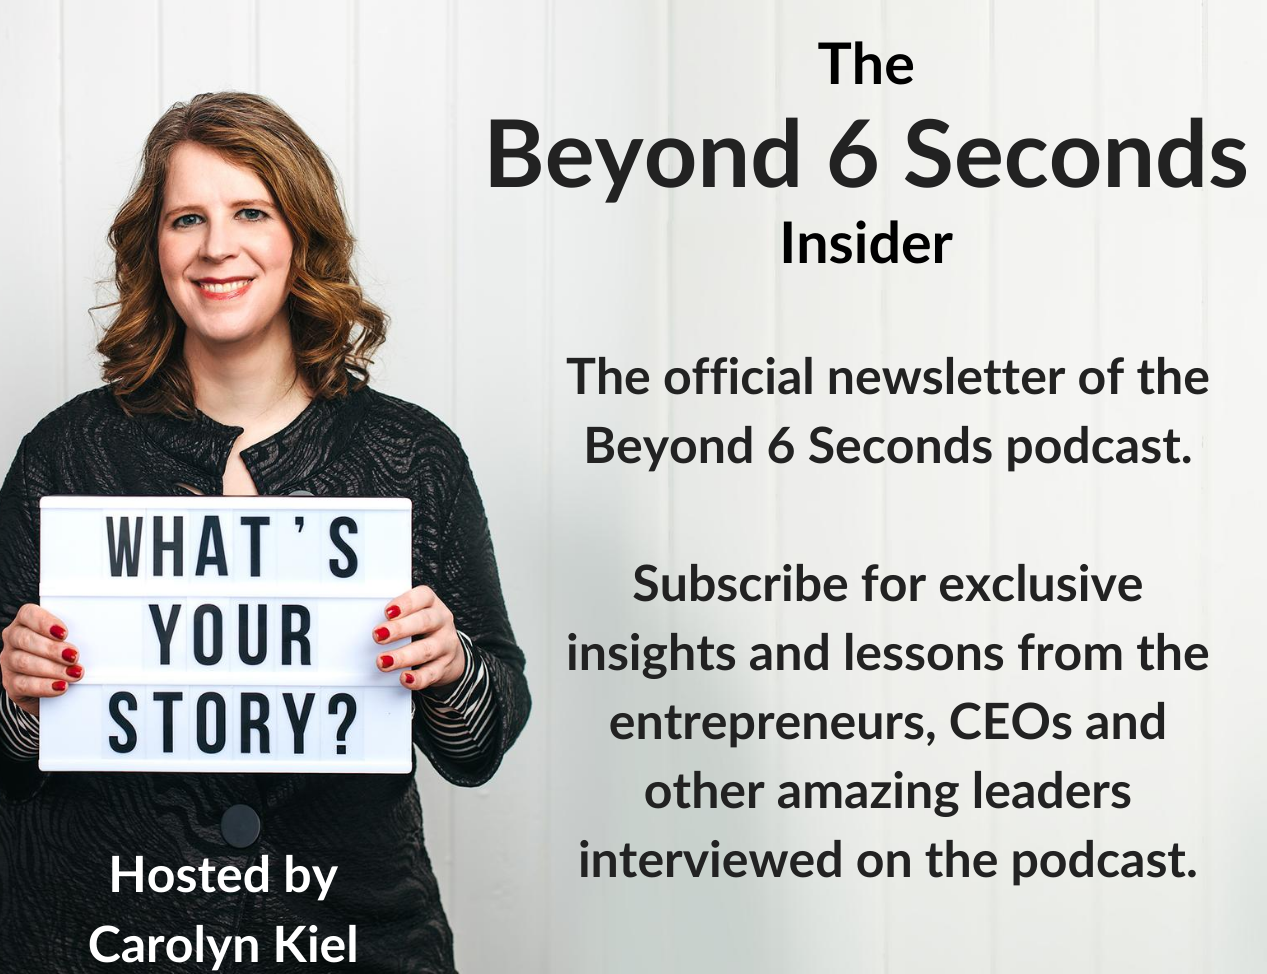 Beyond-6-Seconds-Insider-graphic-cropped